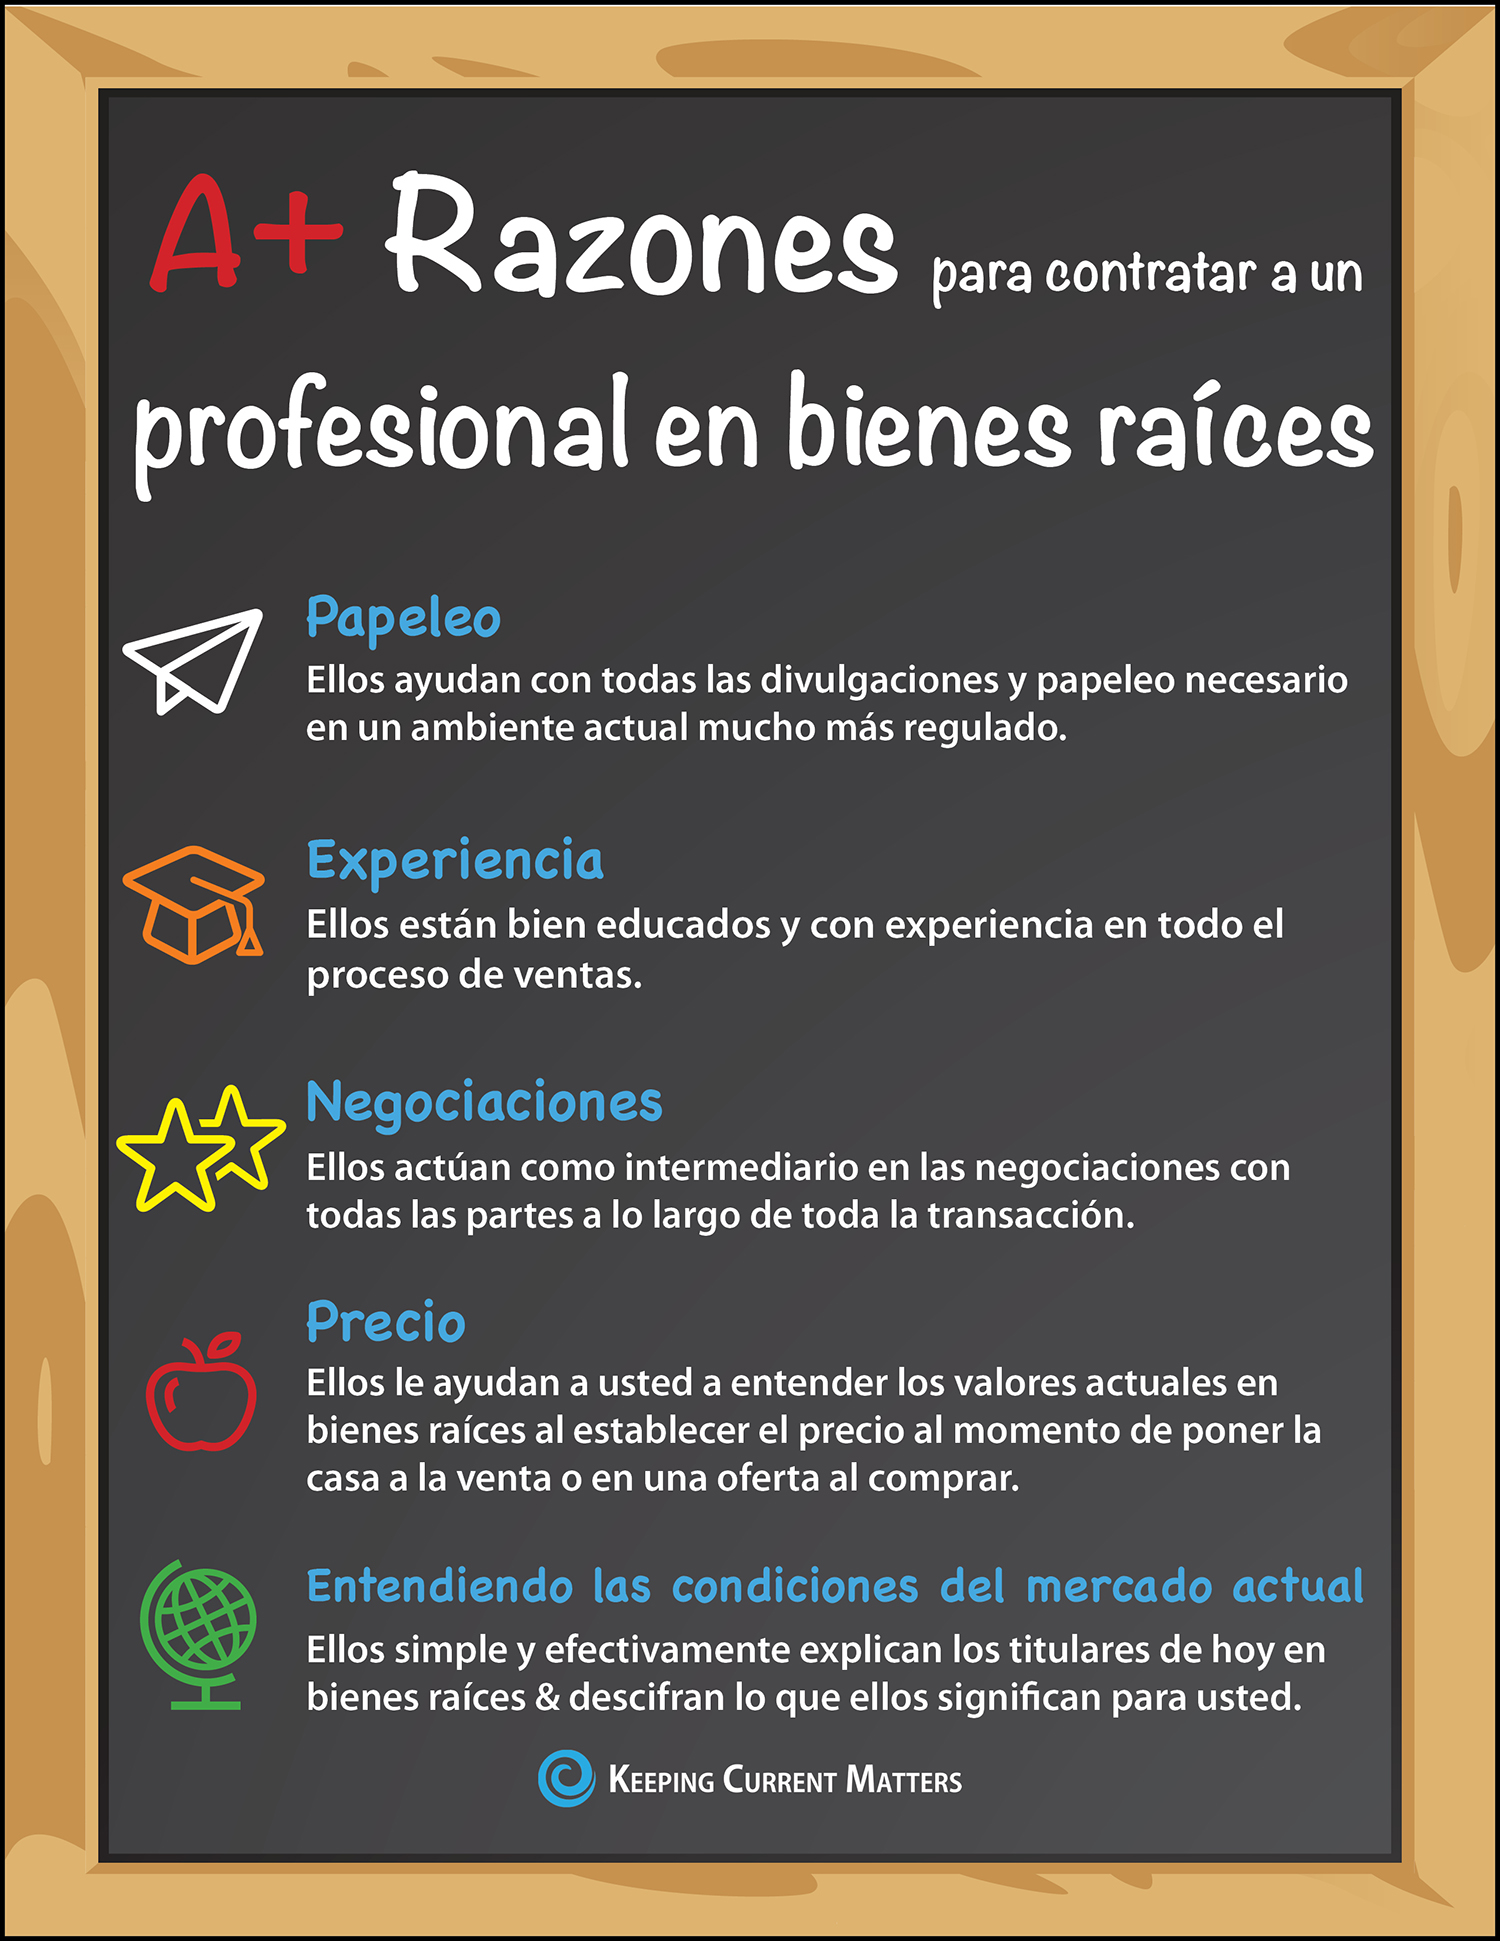 Want to Get an A? Hire A Real Estate Professional [INFOGRAPHIC] | Keeping Current Matters